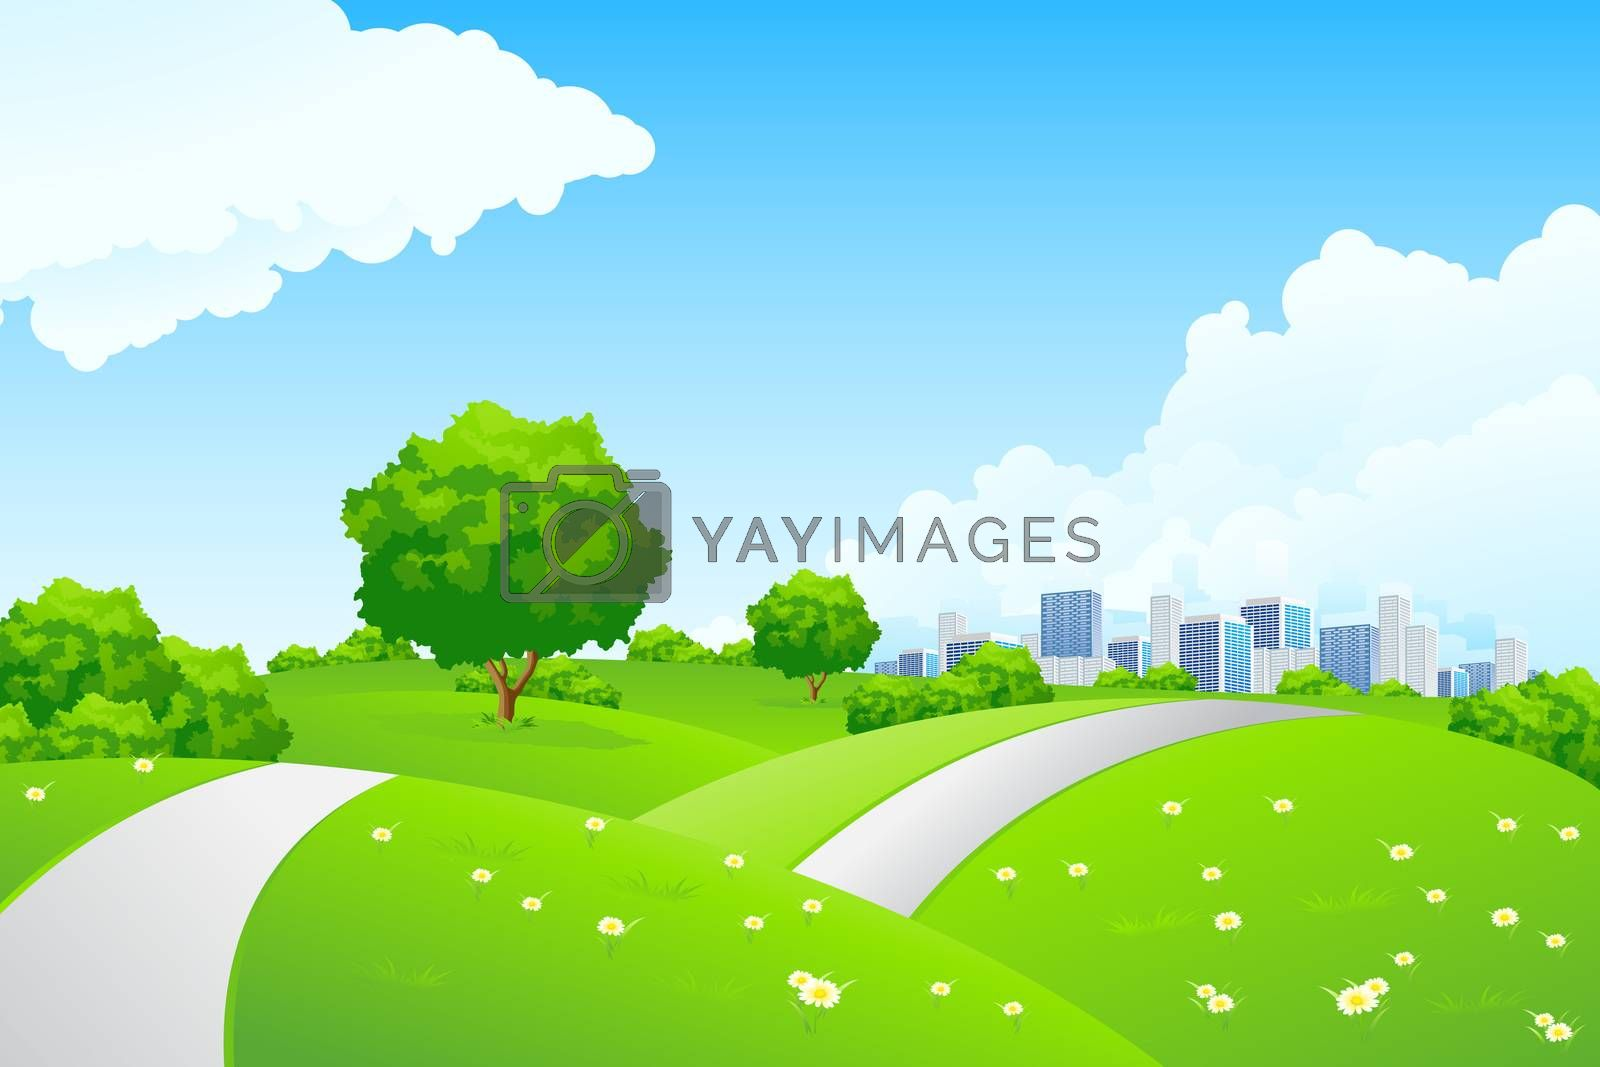 Landscape - green hills with tree and cityscape by WaD